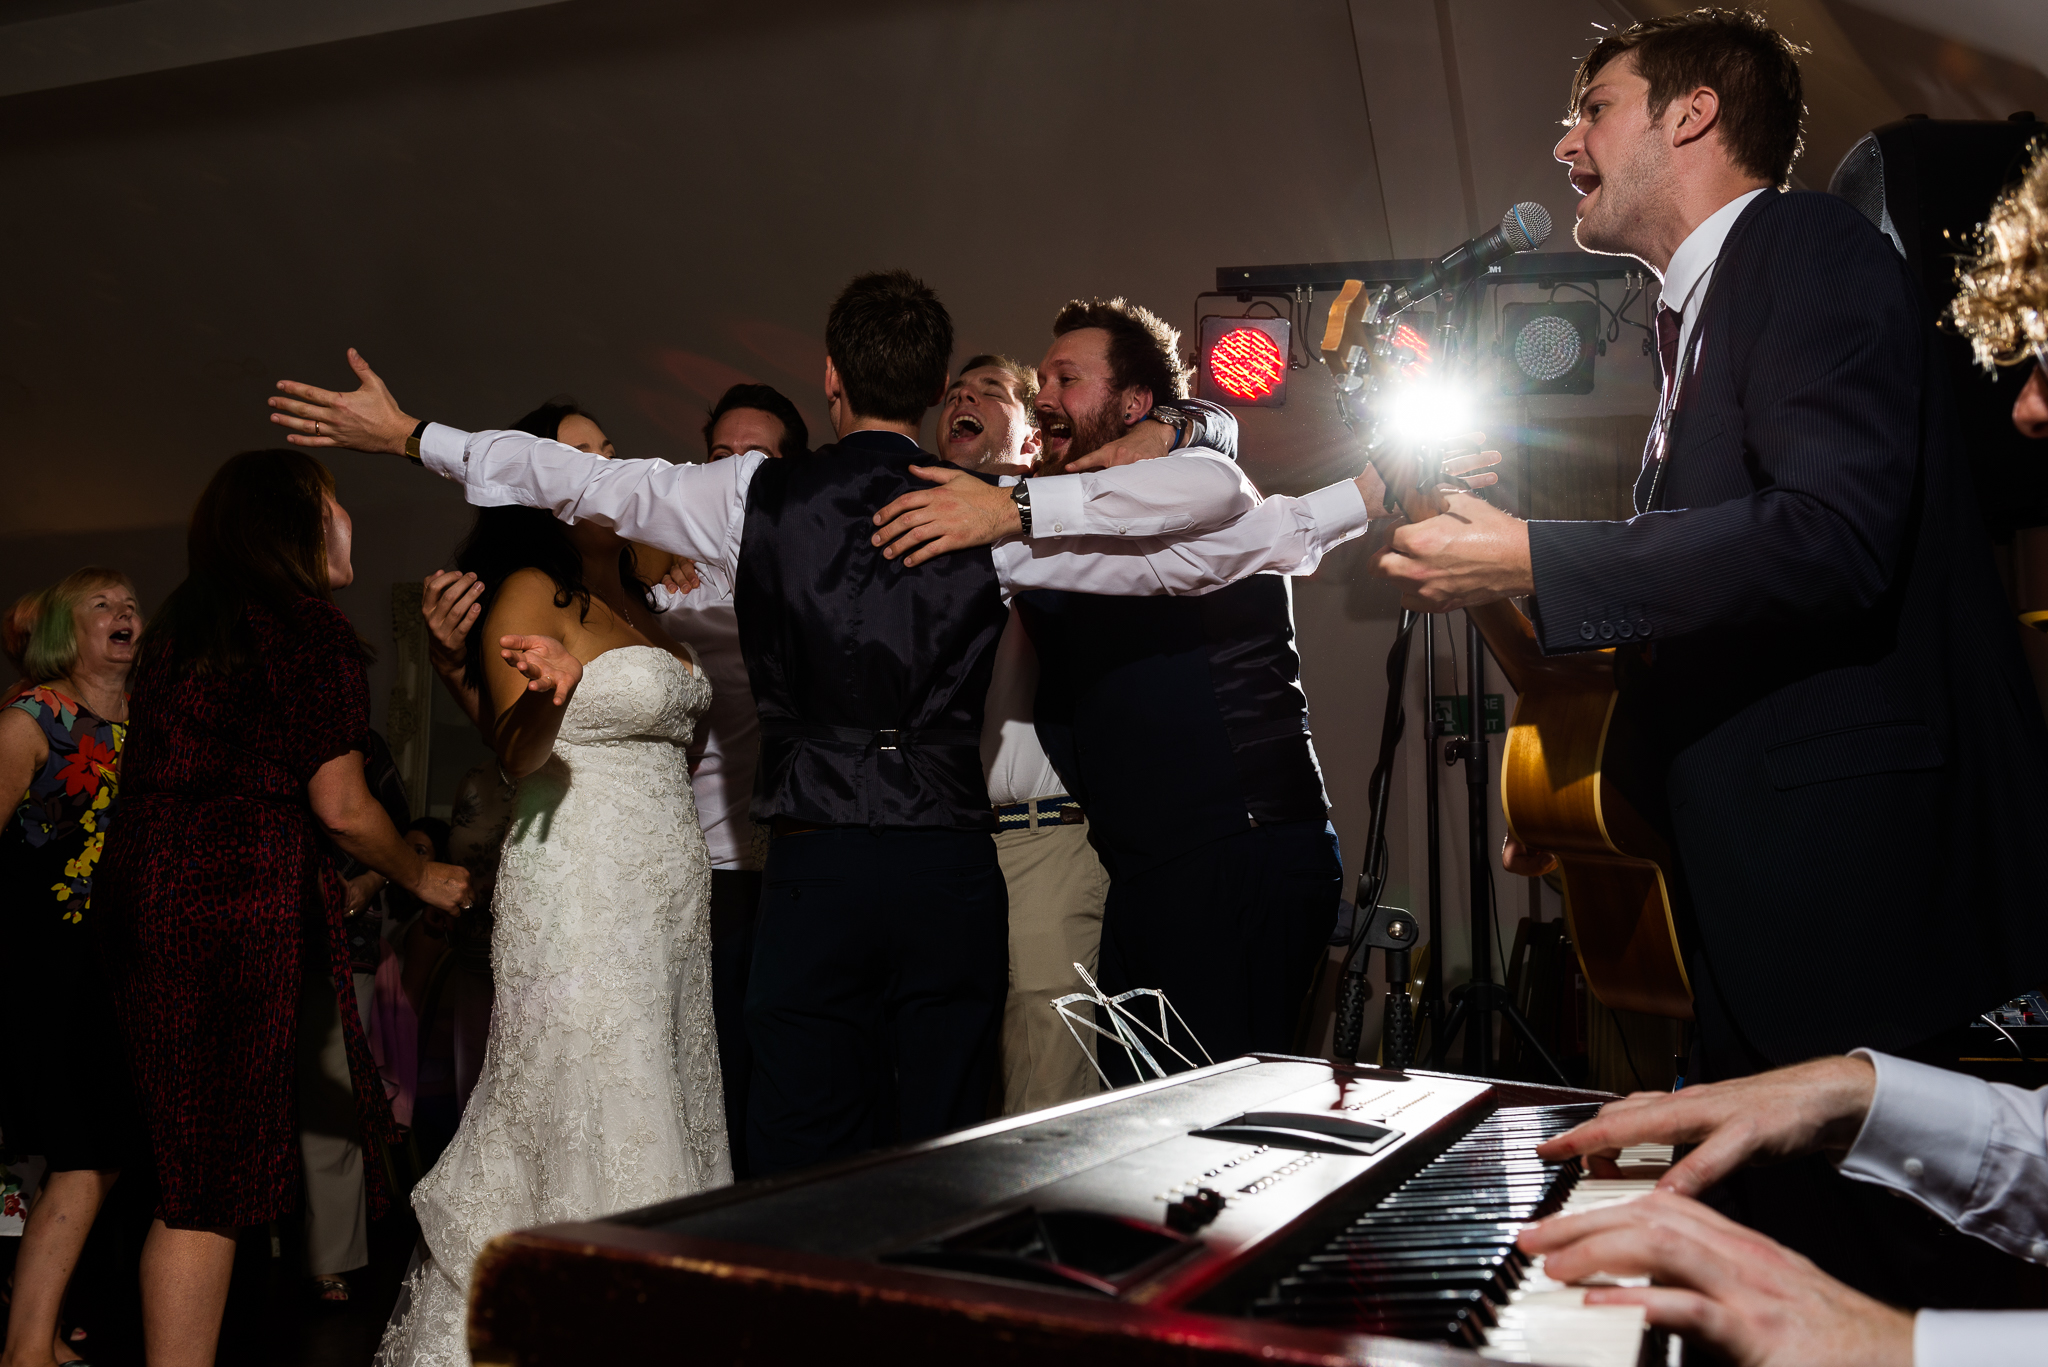 Relaxed Summer Wedding at The Manor, Cheadle Guitarist Musicians Vinyl-58.jpg